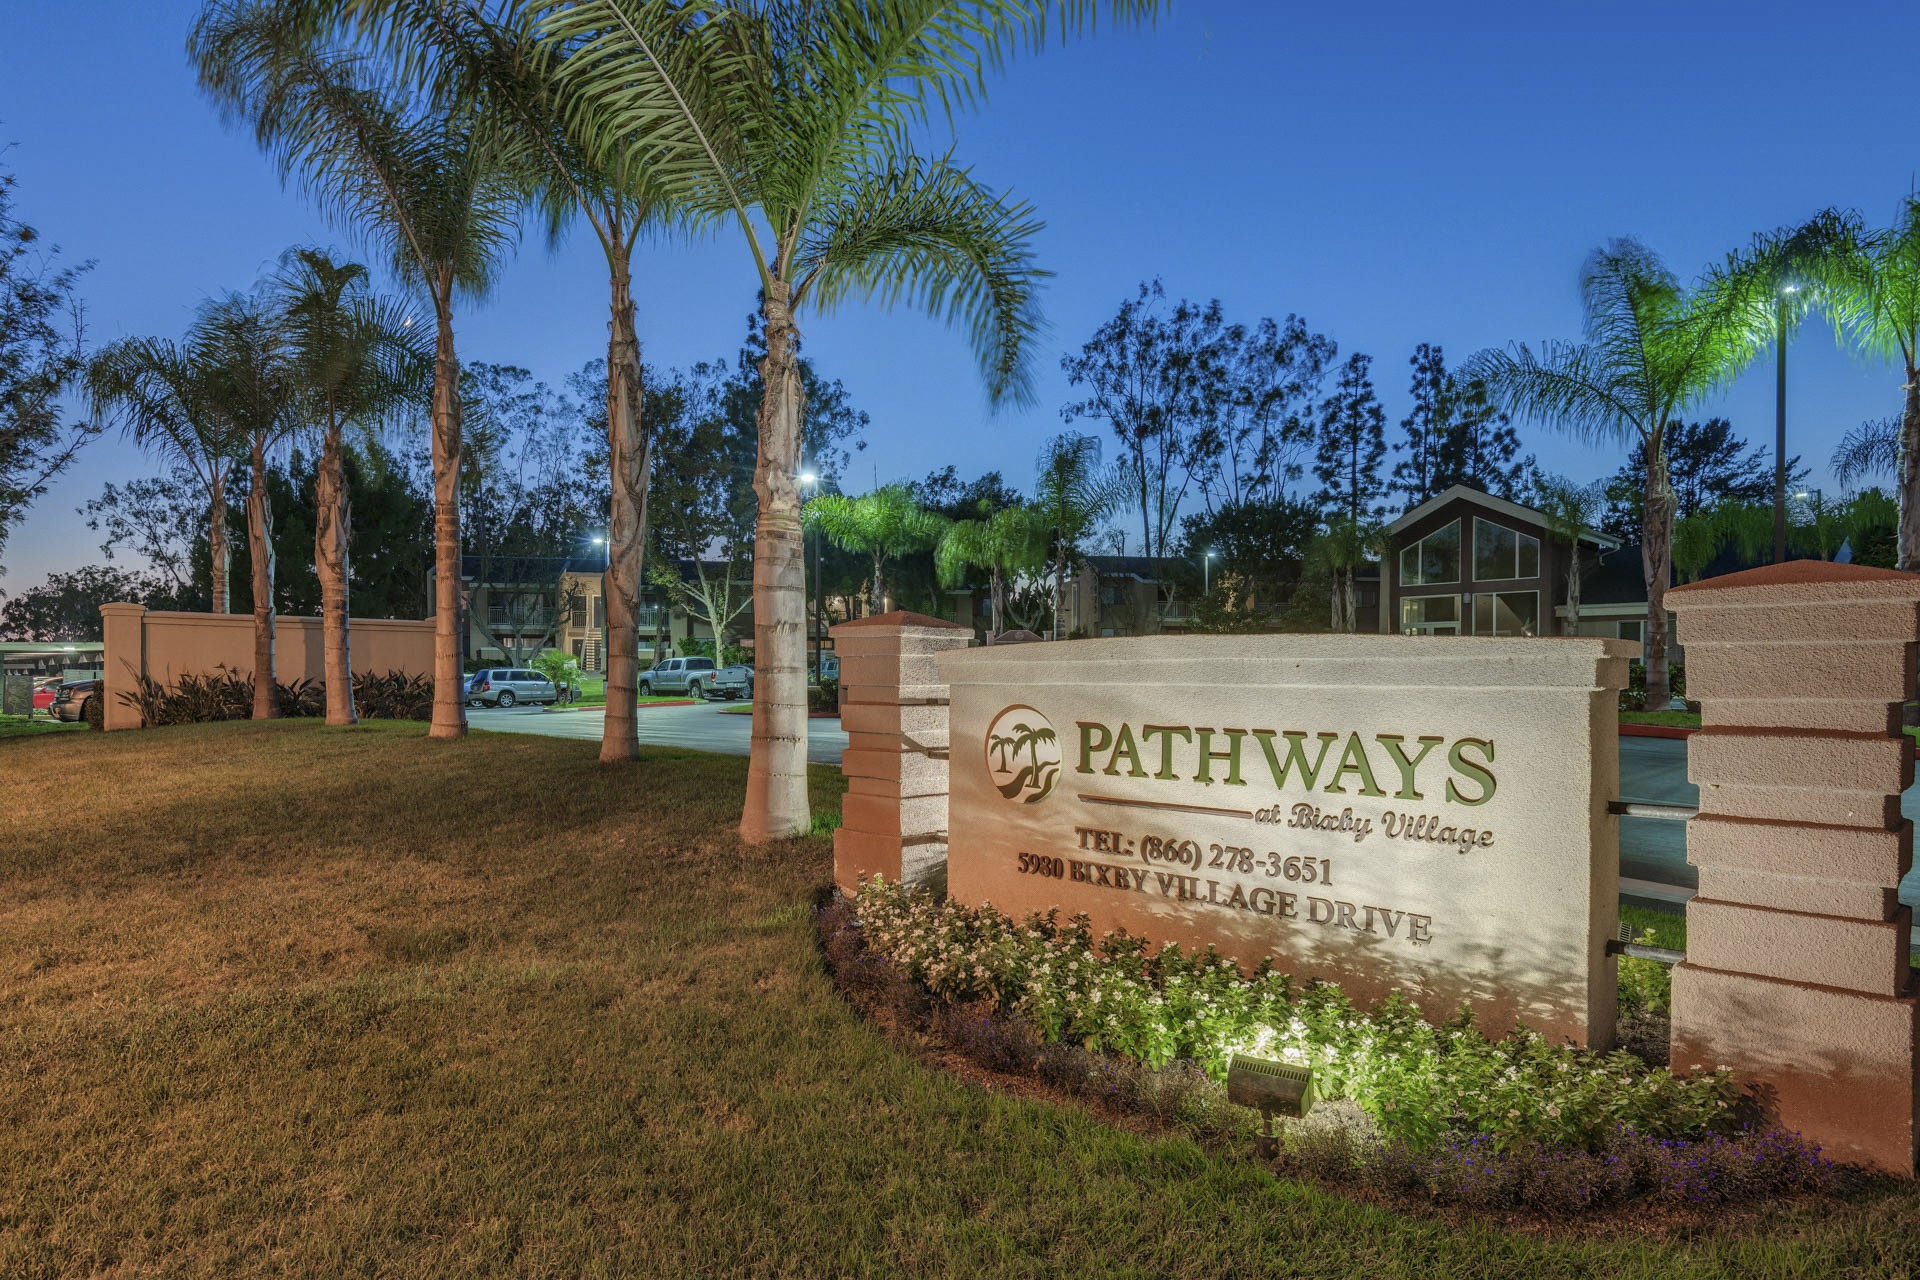 Pathways at Bixby Village